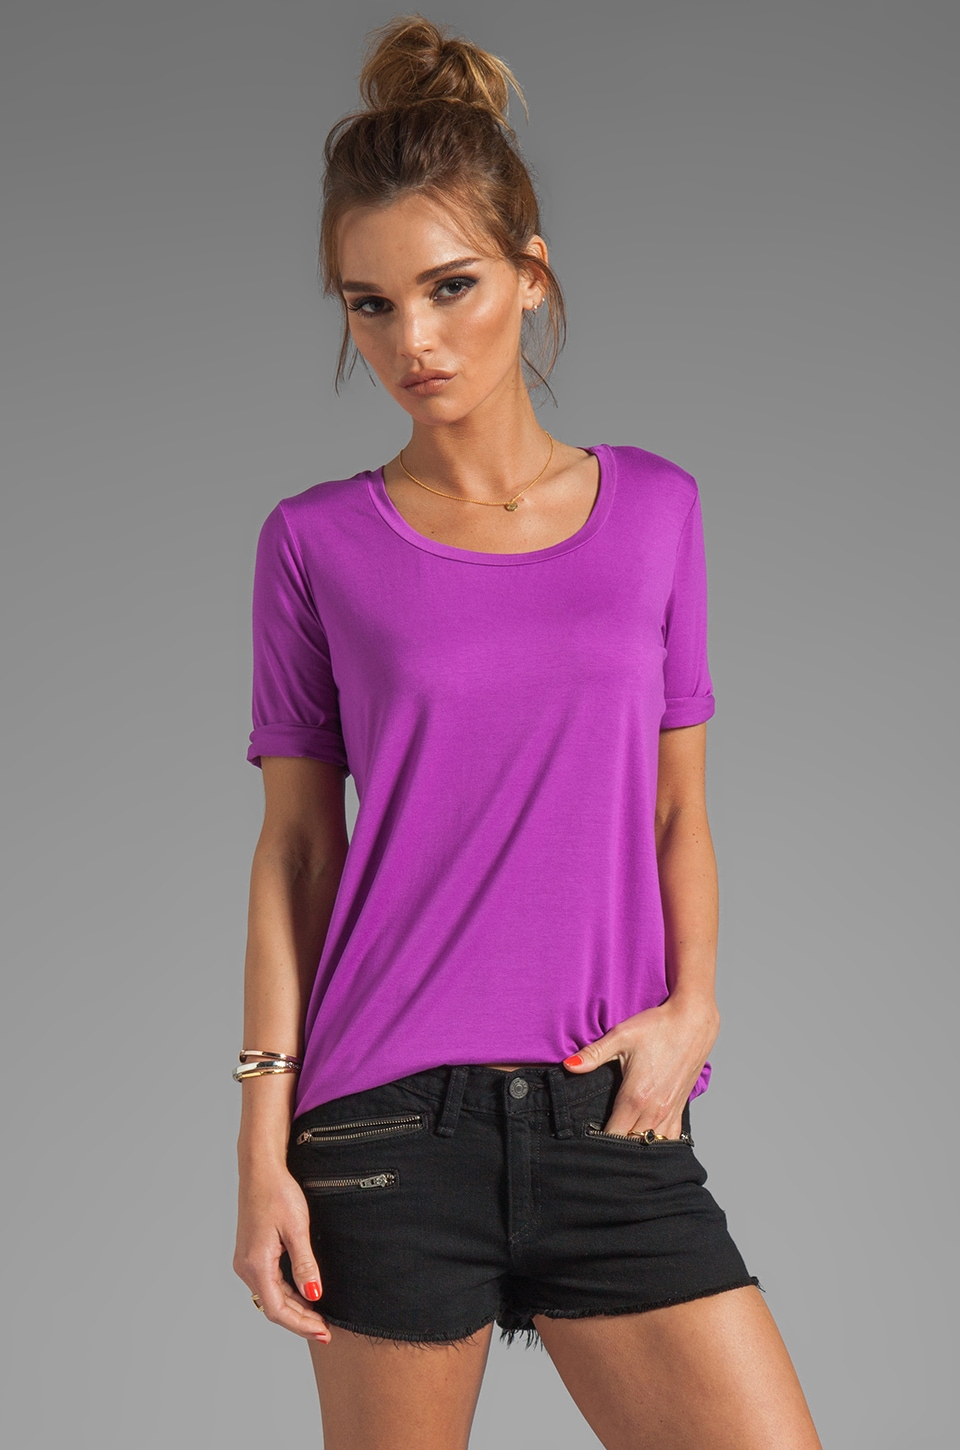 Feel the Piece Boyfriend Tee in Orchid